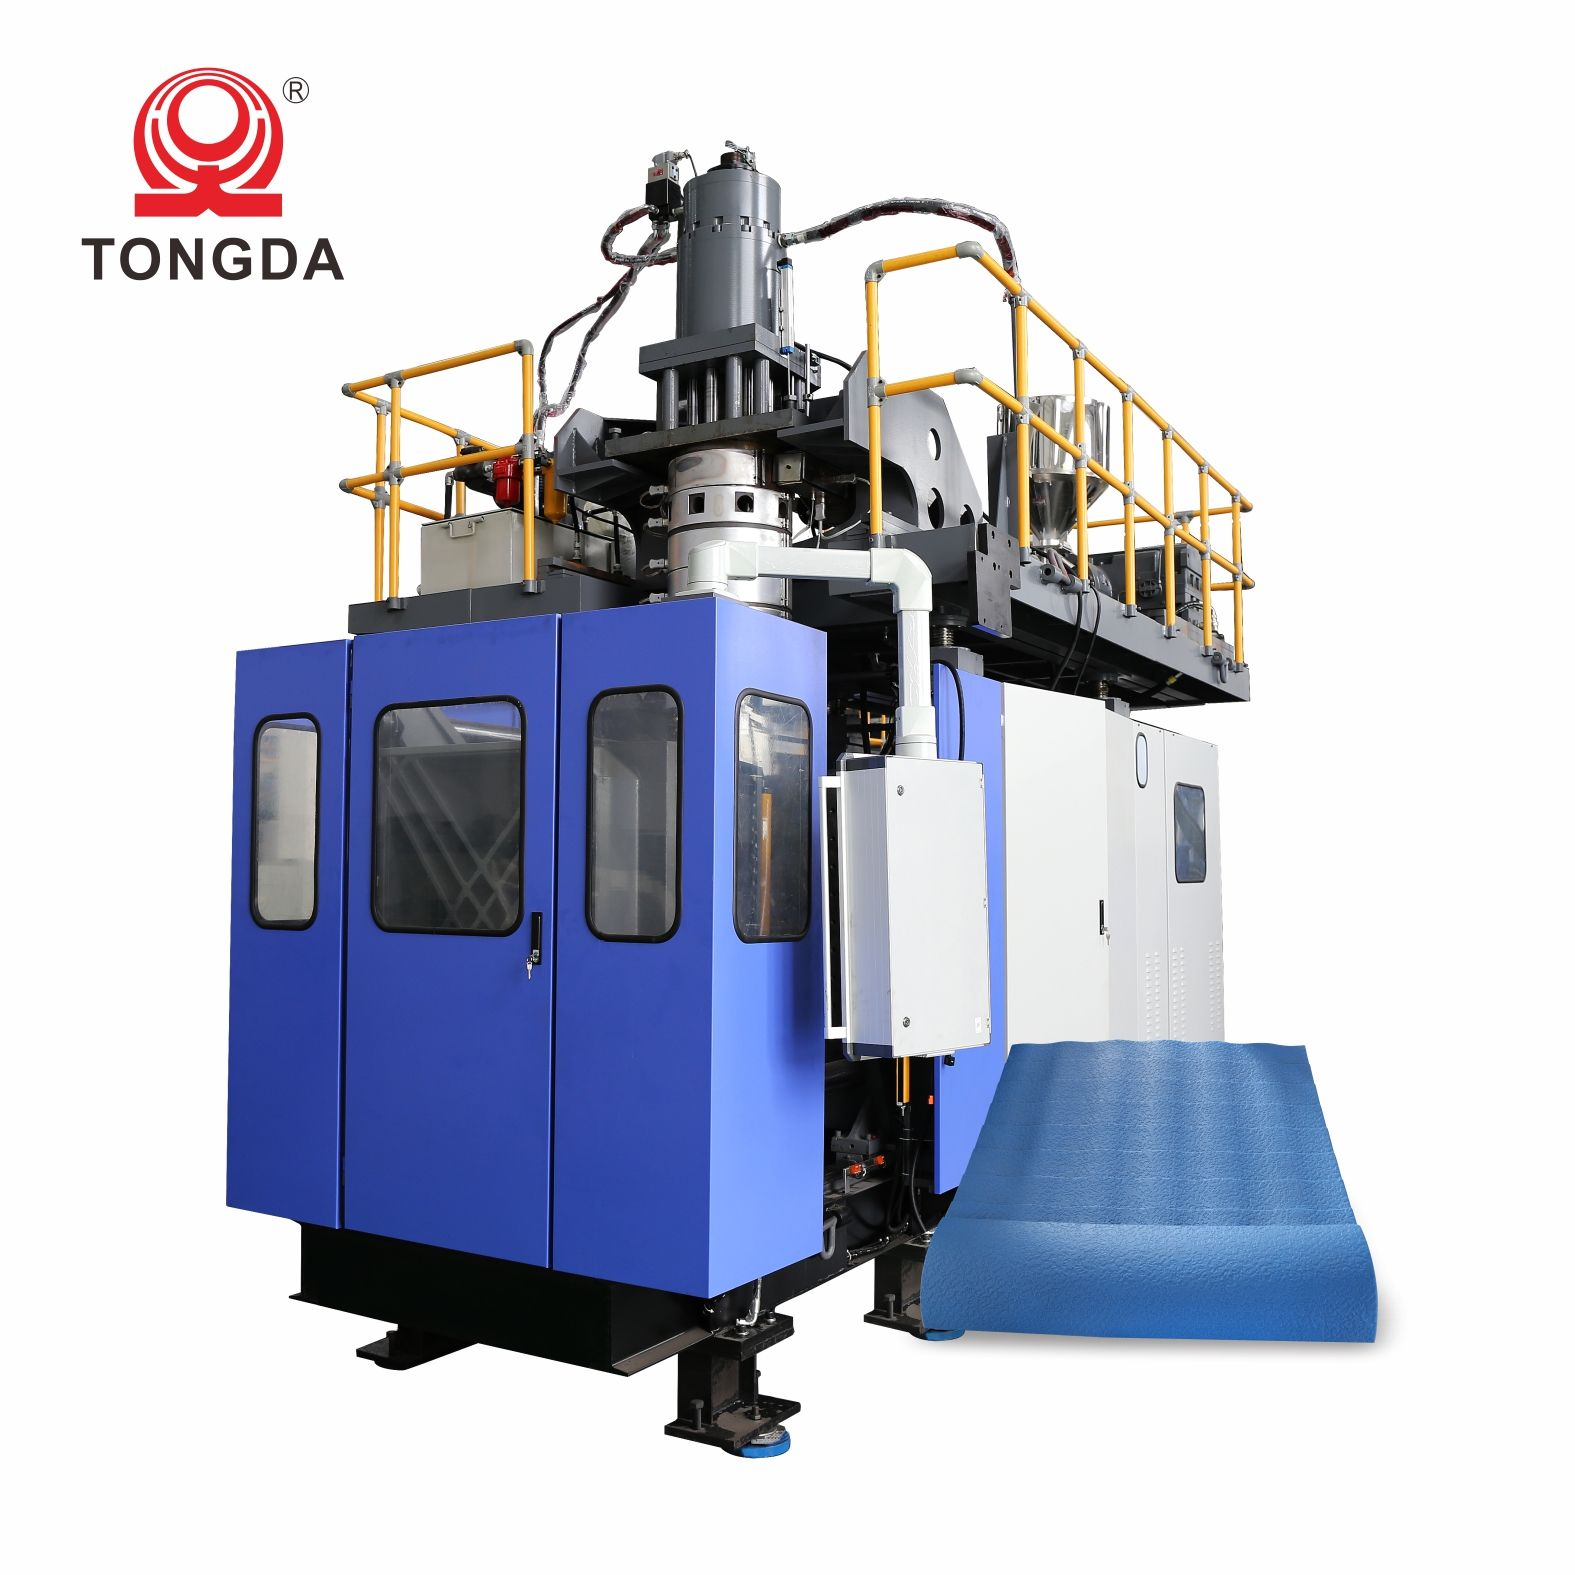 TONGDA TDB-120F Fully automatic plastic hdpe toy mannequin barrel 120 l making machine